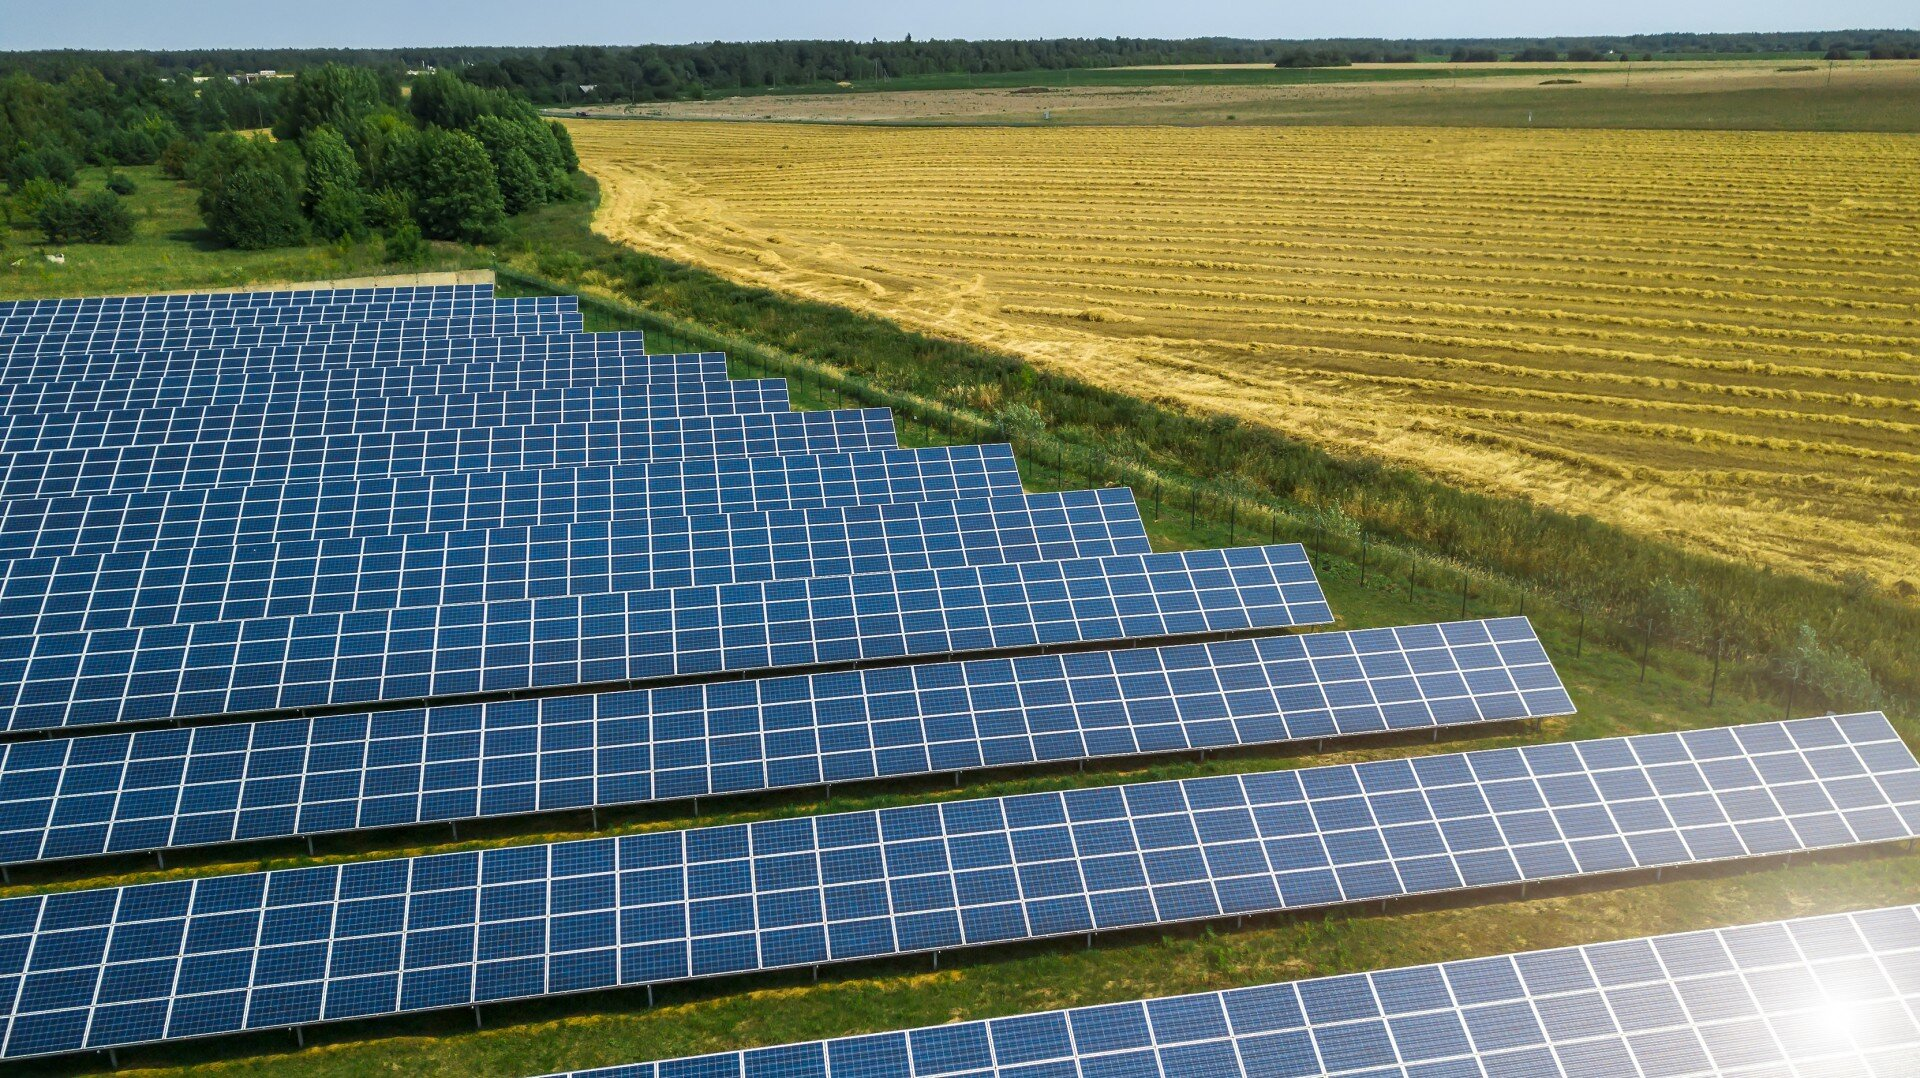 The project is expected to  provide renewable energy to an estimated 500,000 households, and create more than 200 jobs in the construction phase